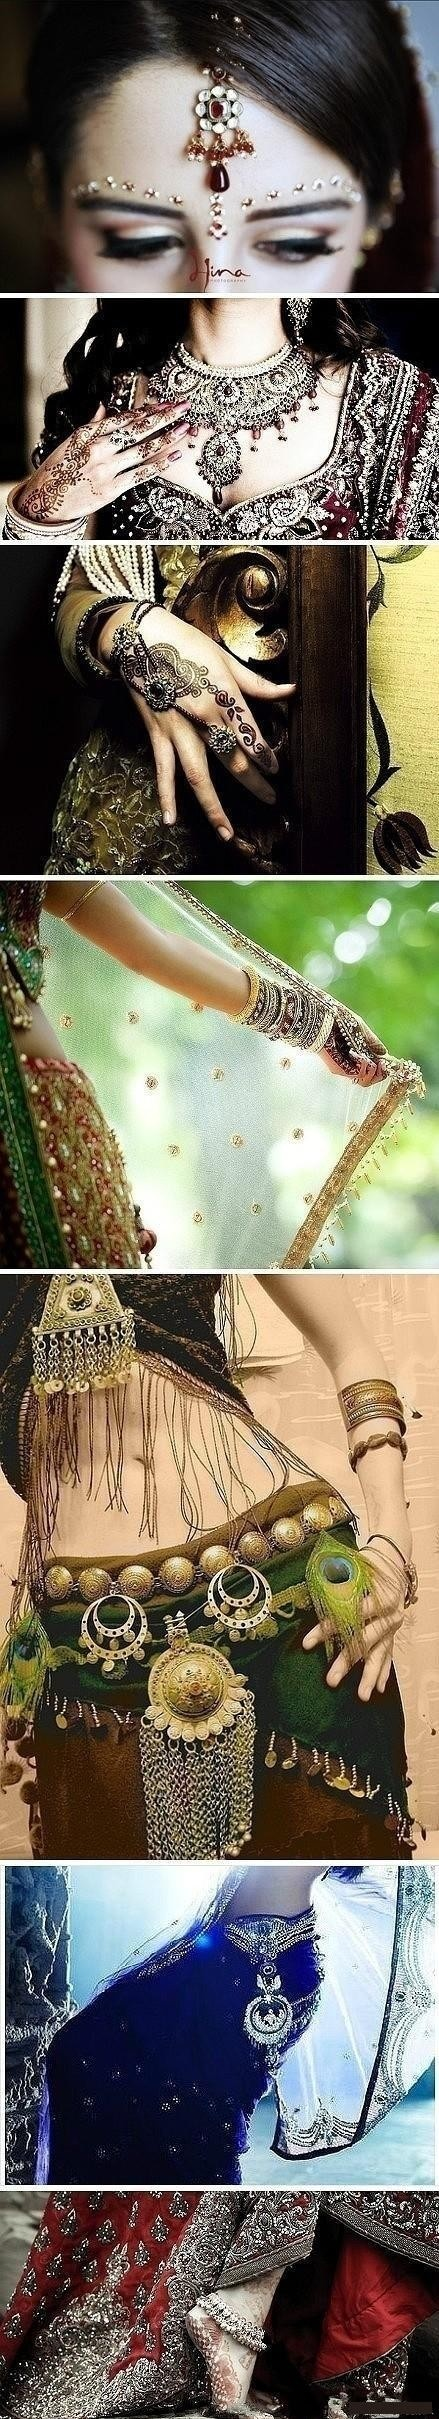 Indian wedding <3